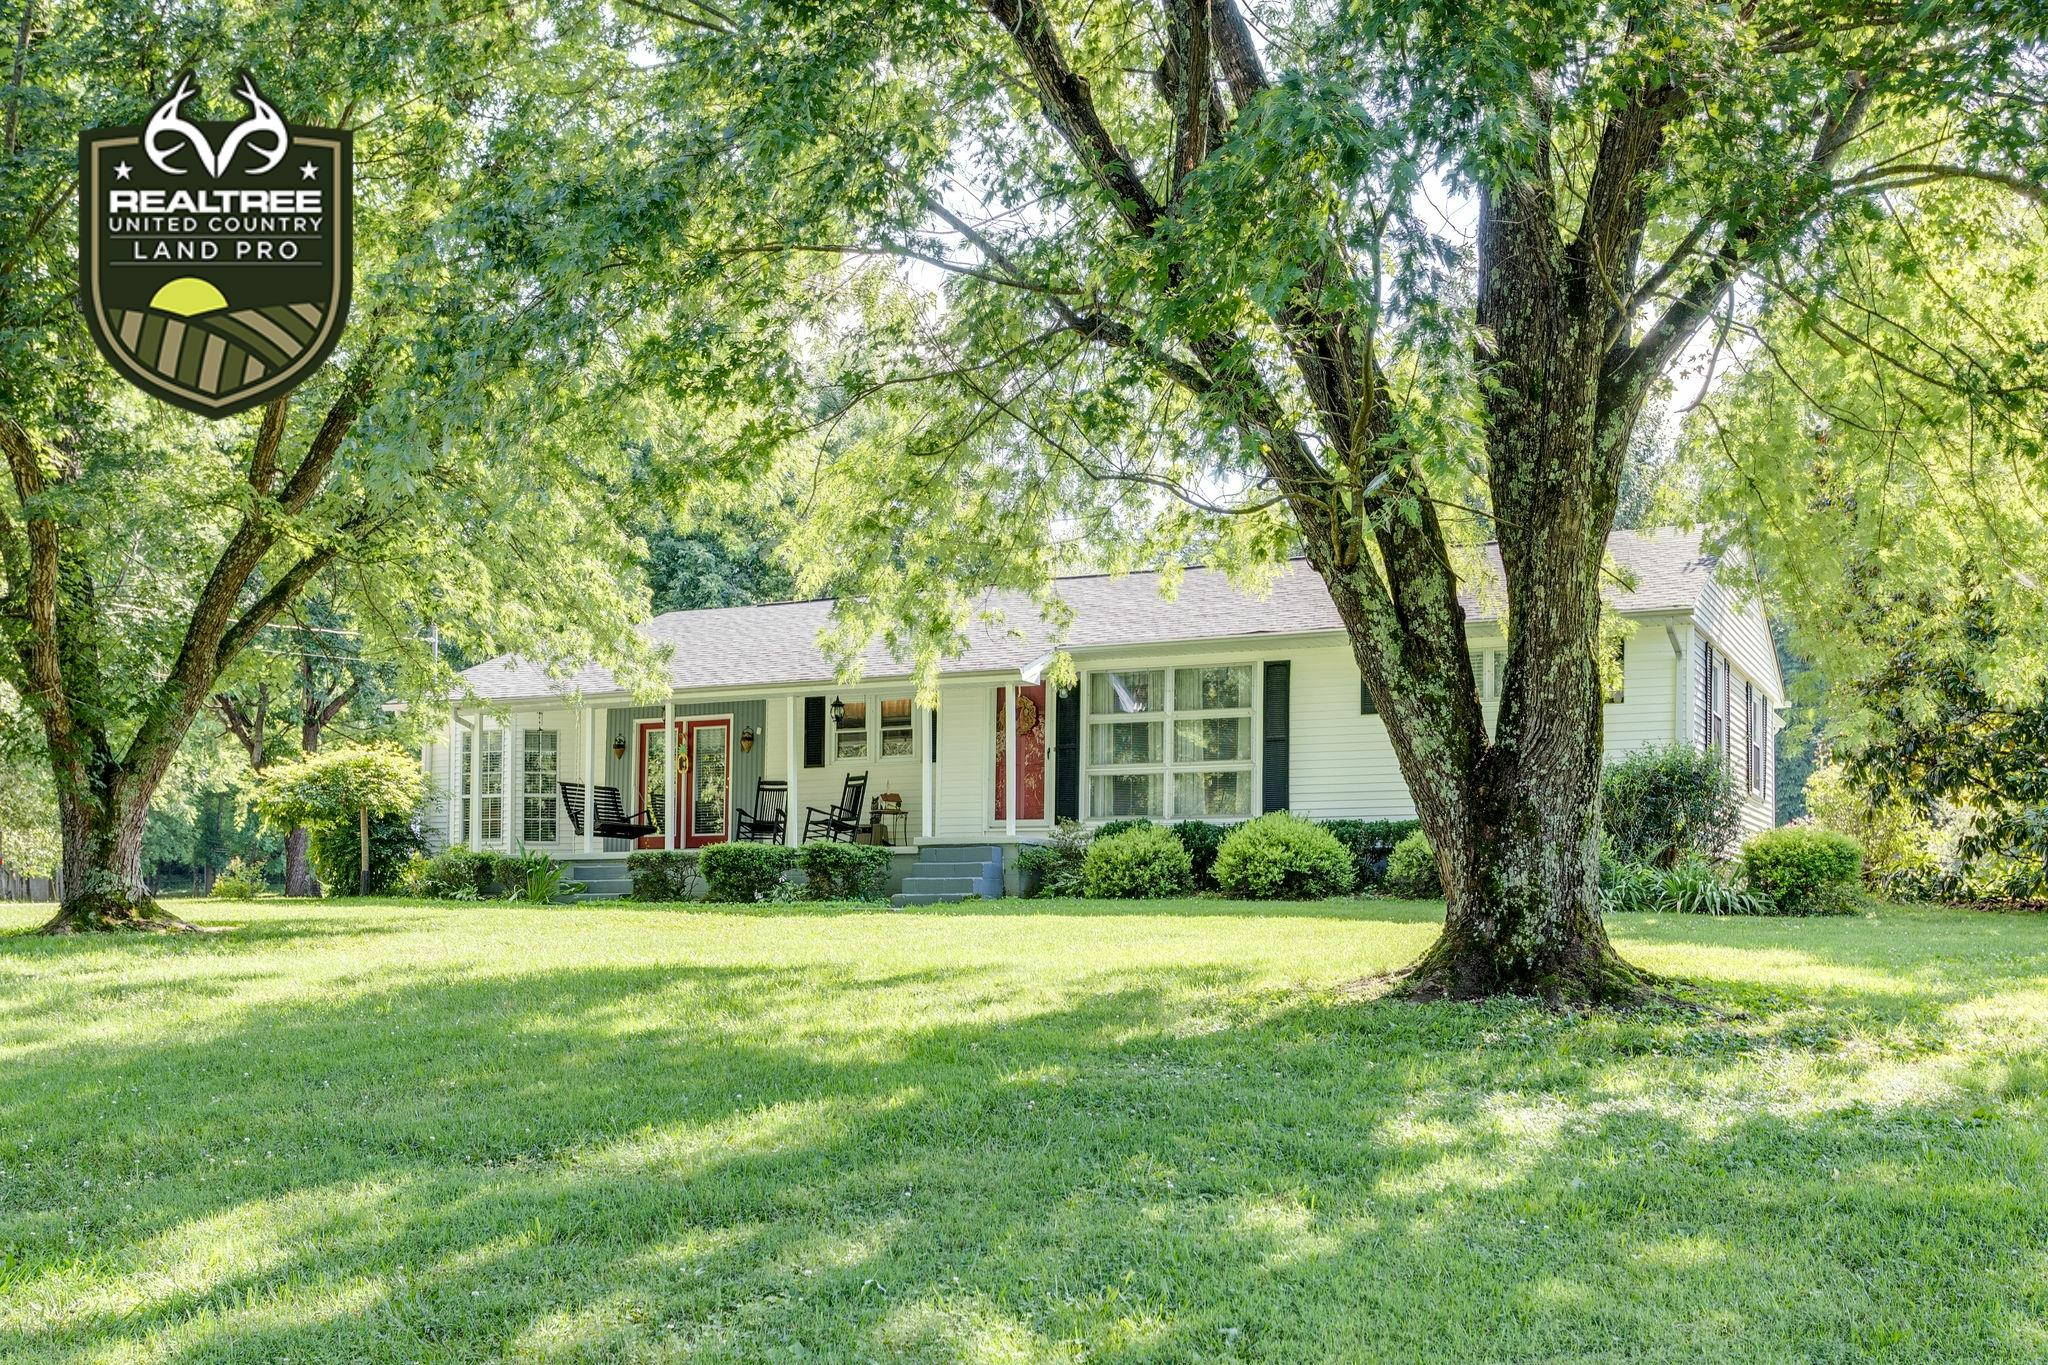 2600 Campbells Station Rd, Culleoka, TN 38451 - Culleoka, TN real estate listing